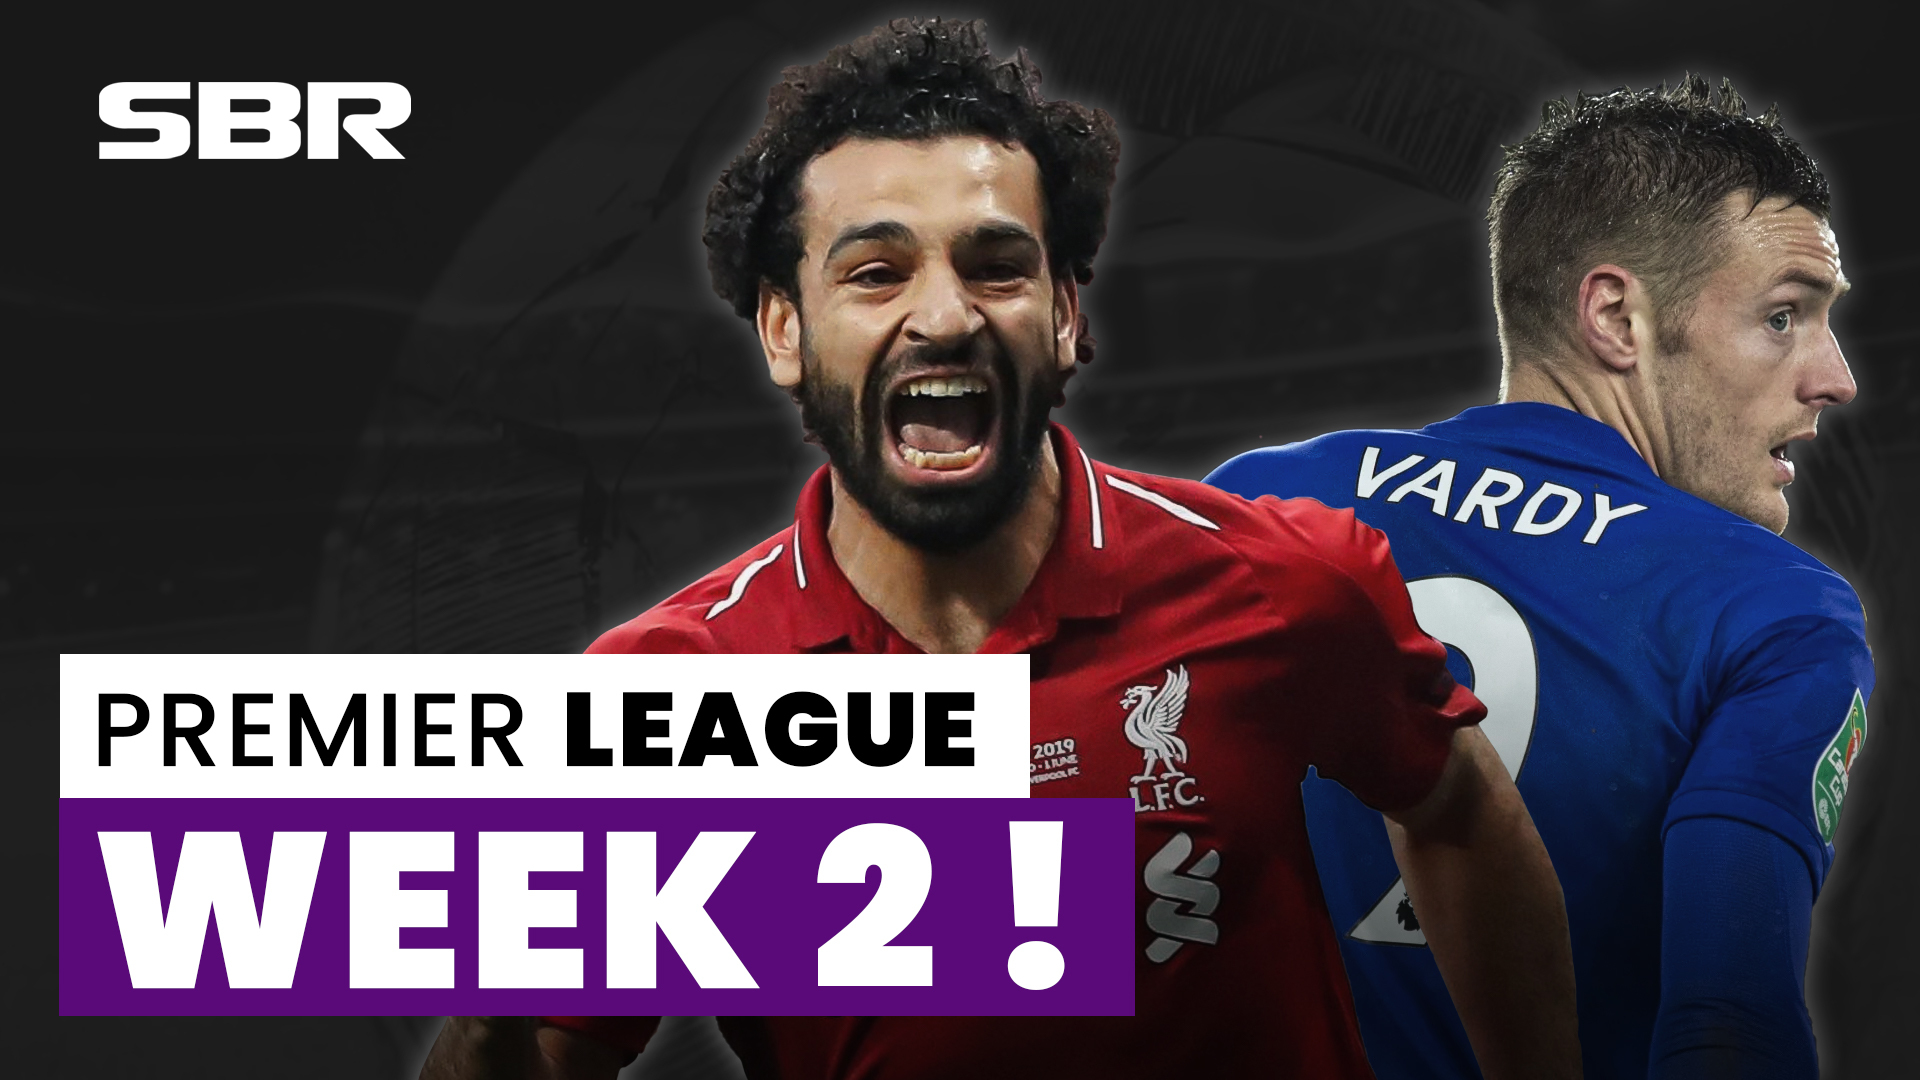 [WATCH] Premier League Week 2: Tips and Predictions